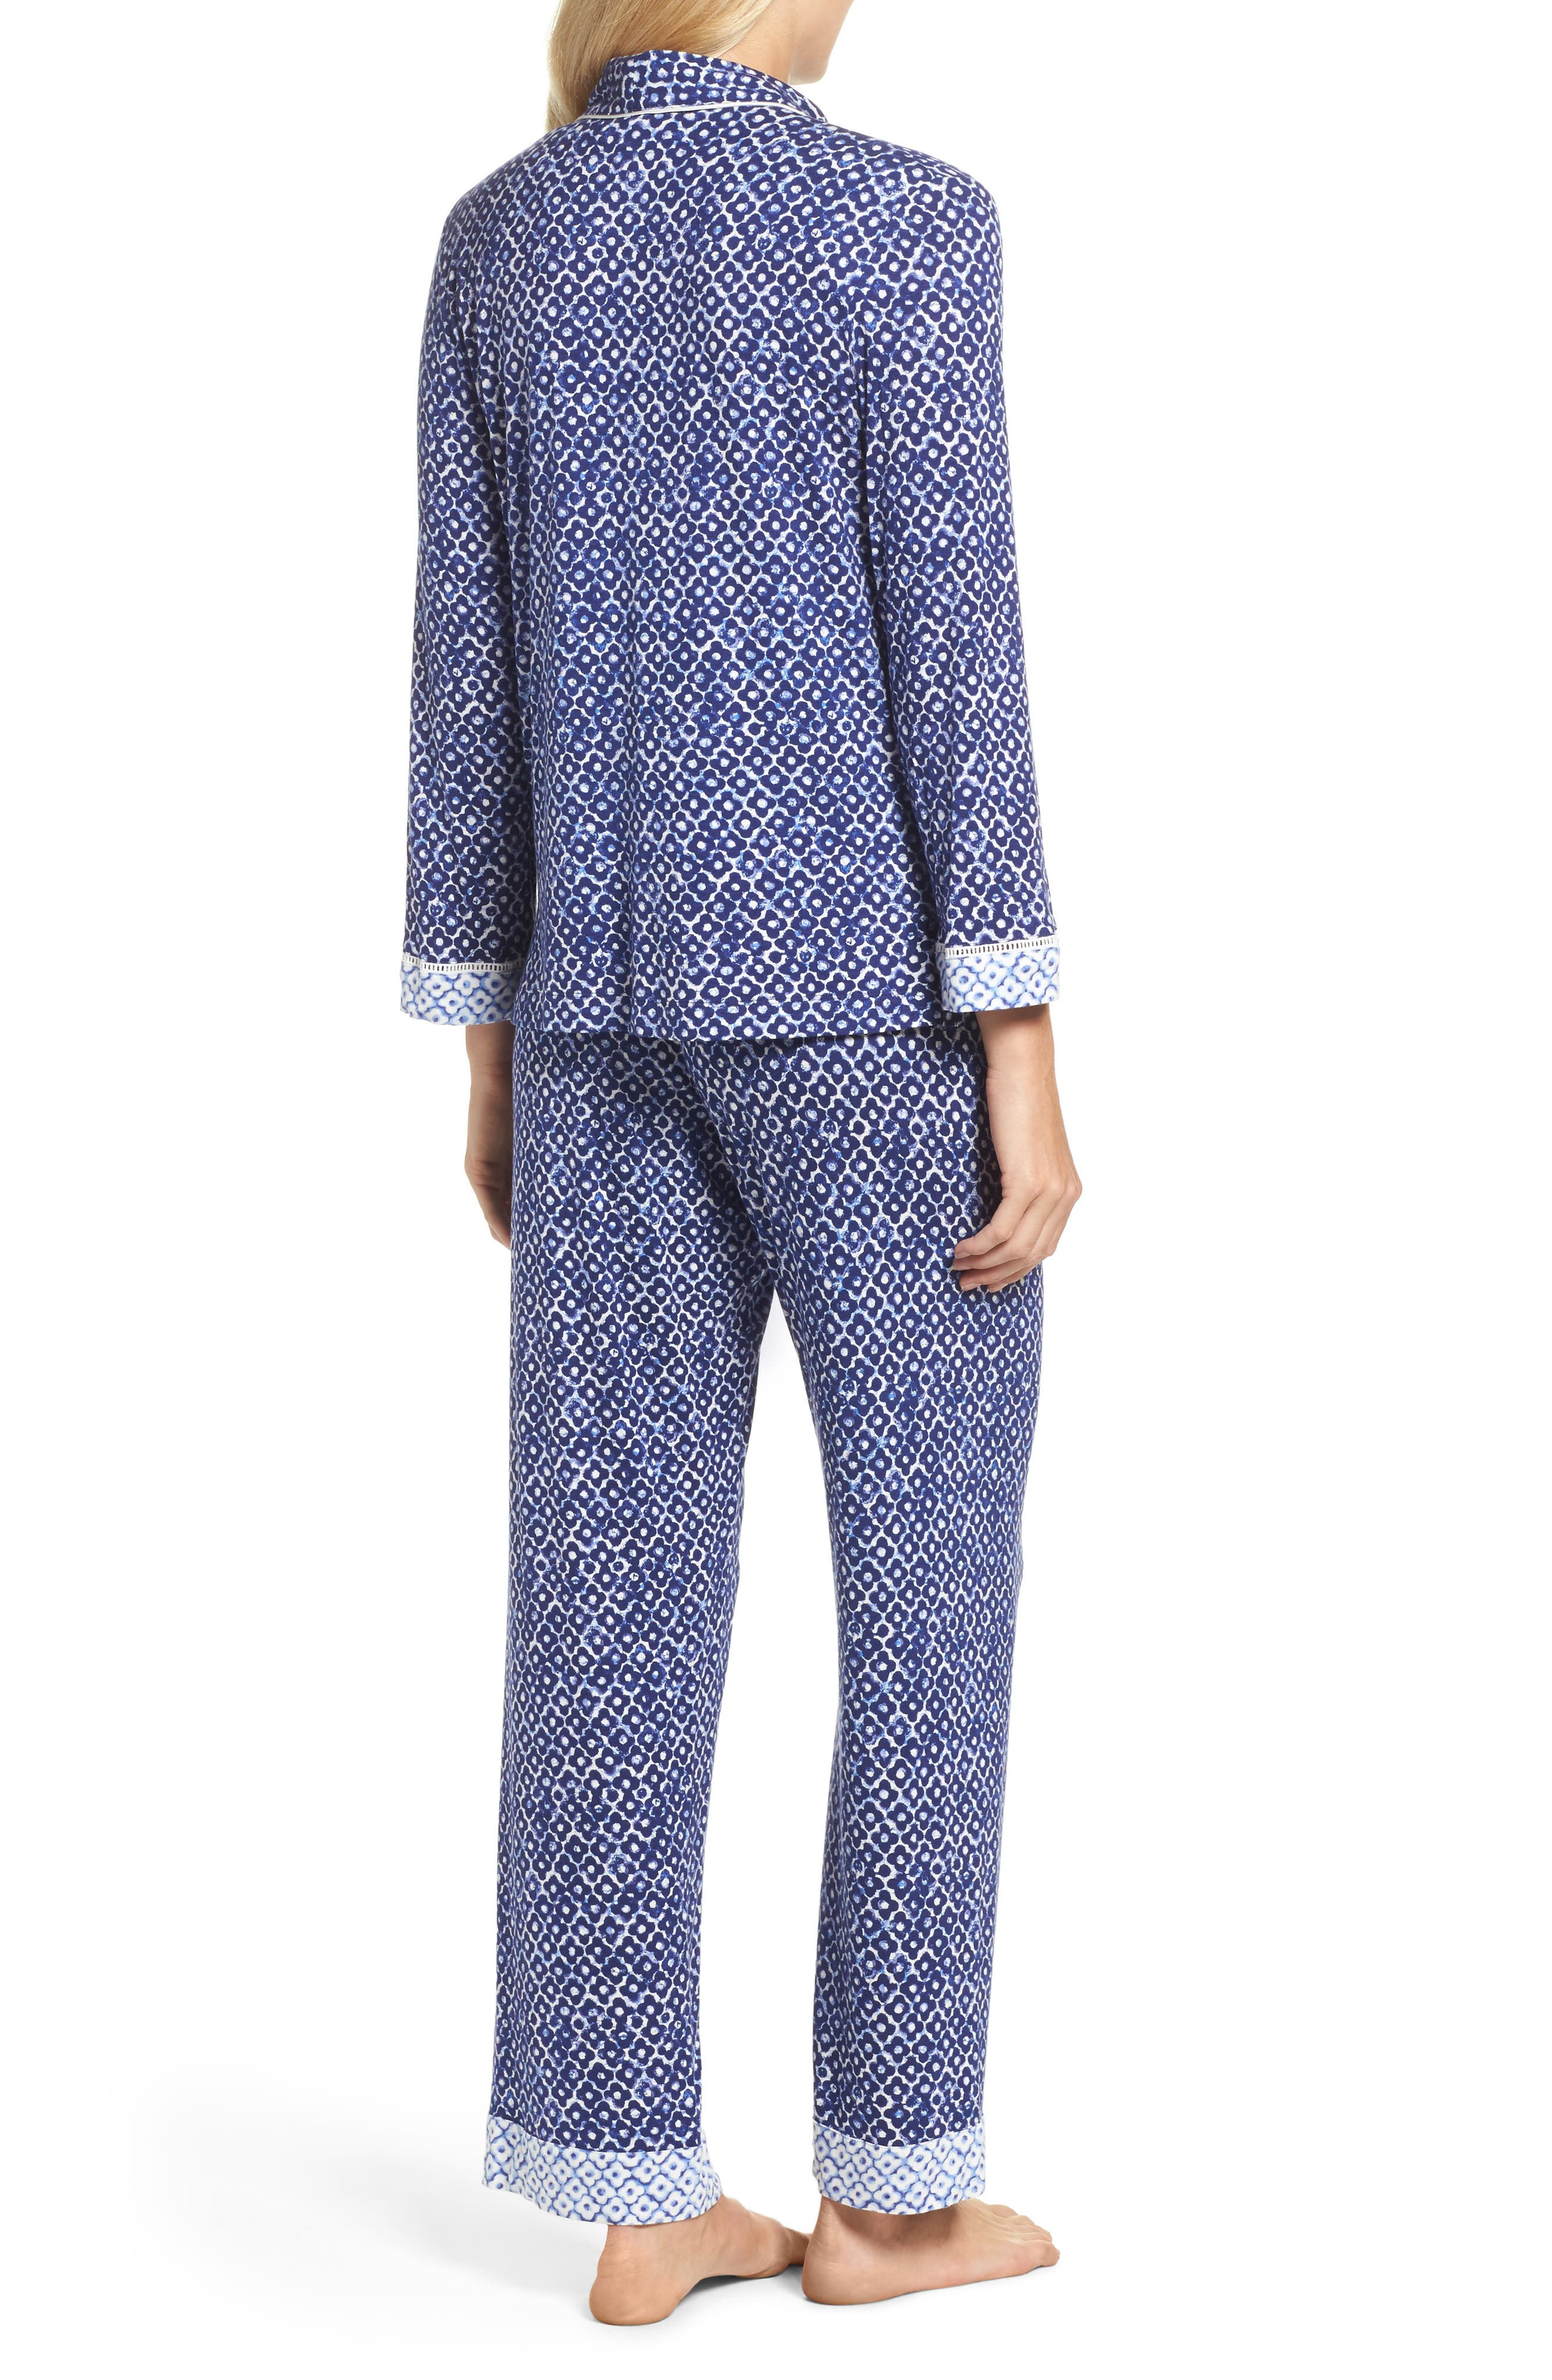 Sleepwear Pajamas,                             Alternate thumbnail 2, color,                             Navy Clover Geo Print